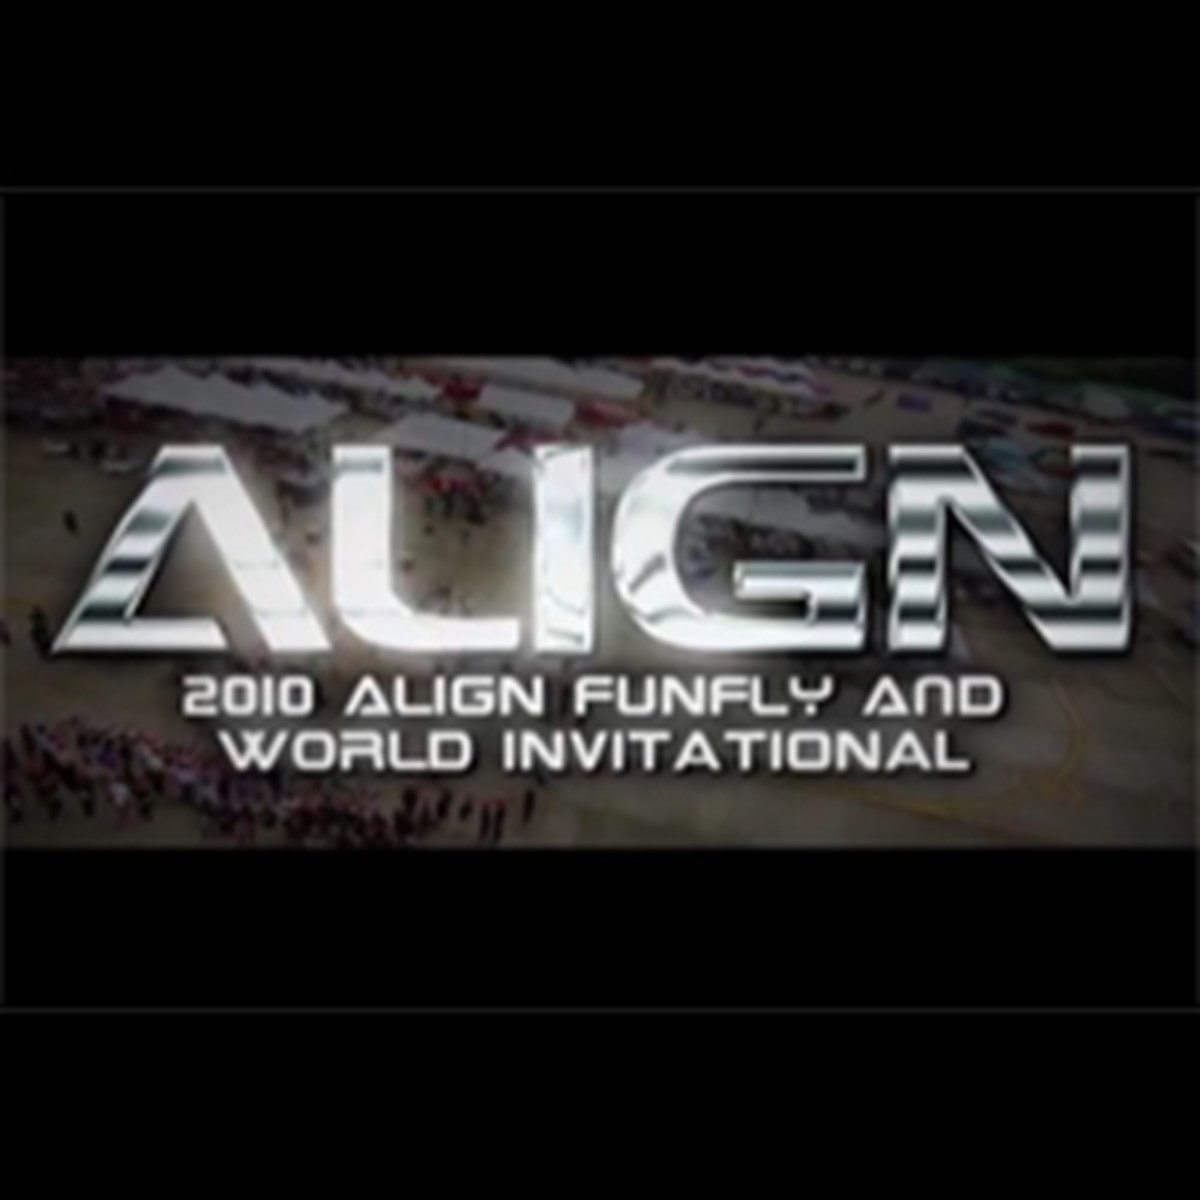 Align FunFly 2011 Trailer